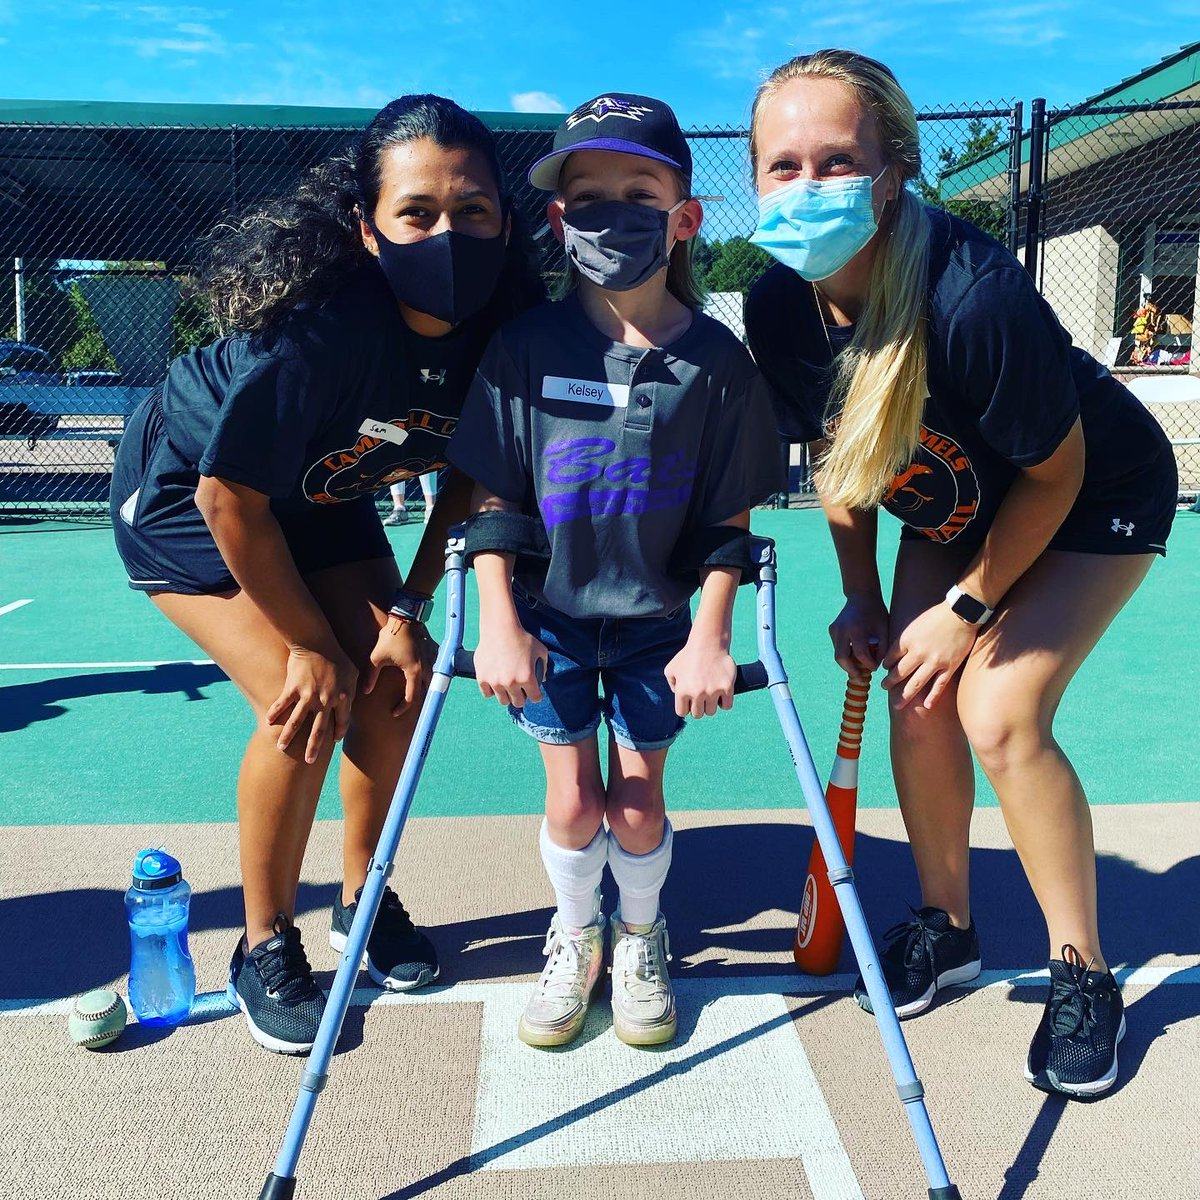 What an amazing day with The Miracle  League! Thank you so much for having us! #rollhumps #gocamels #softball #levelup https://t.co/rB6a0LXA6R